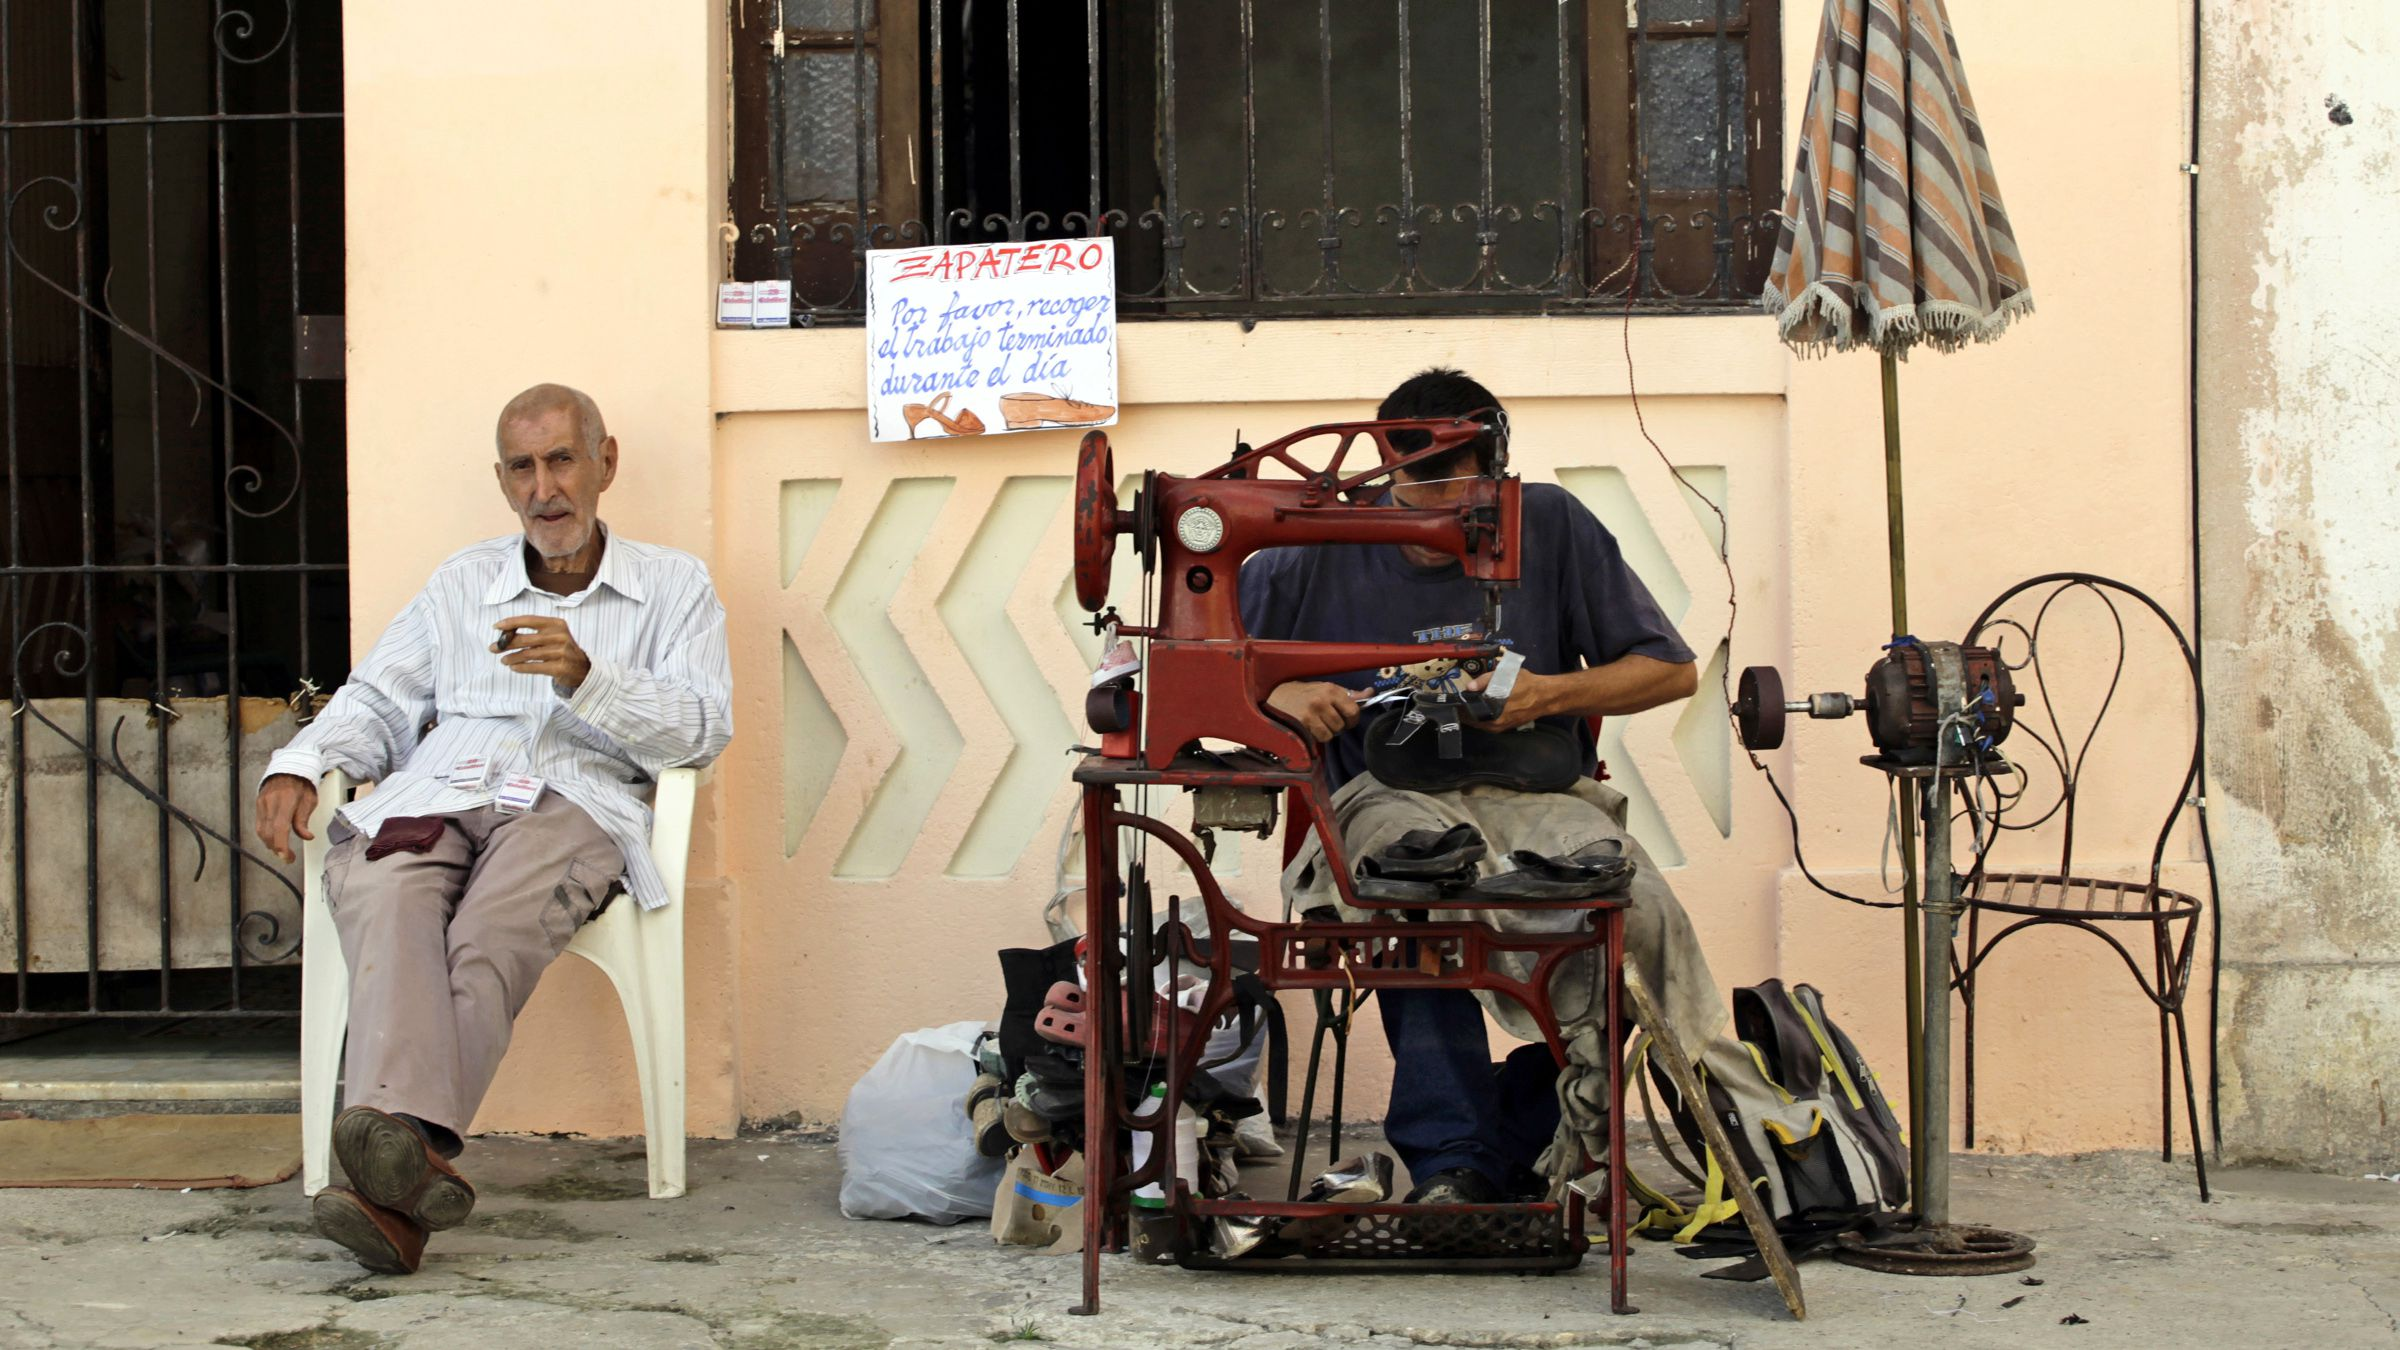 A privately licensed shoe repairman (R) works along a street in Havana February 2, 2012. Unseen in the past, private entrepreneurs are an example of how life is changing in Cuba since President Raul Castro launched a string of limited economic reforms, legalizing certain kinds of businesses, including restaurants, hostels and street vendors. Picture taken February 2, 2012. To match Special Report CUBA-ECONOMY/REFORMS